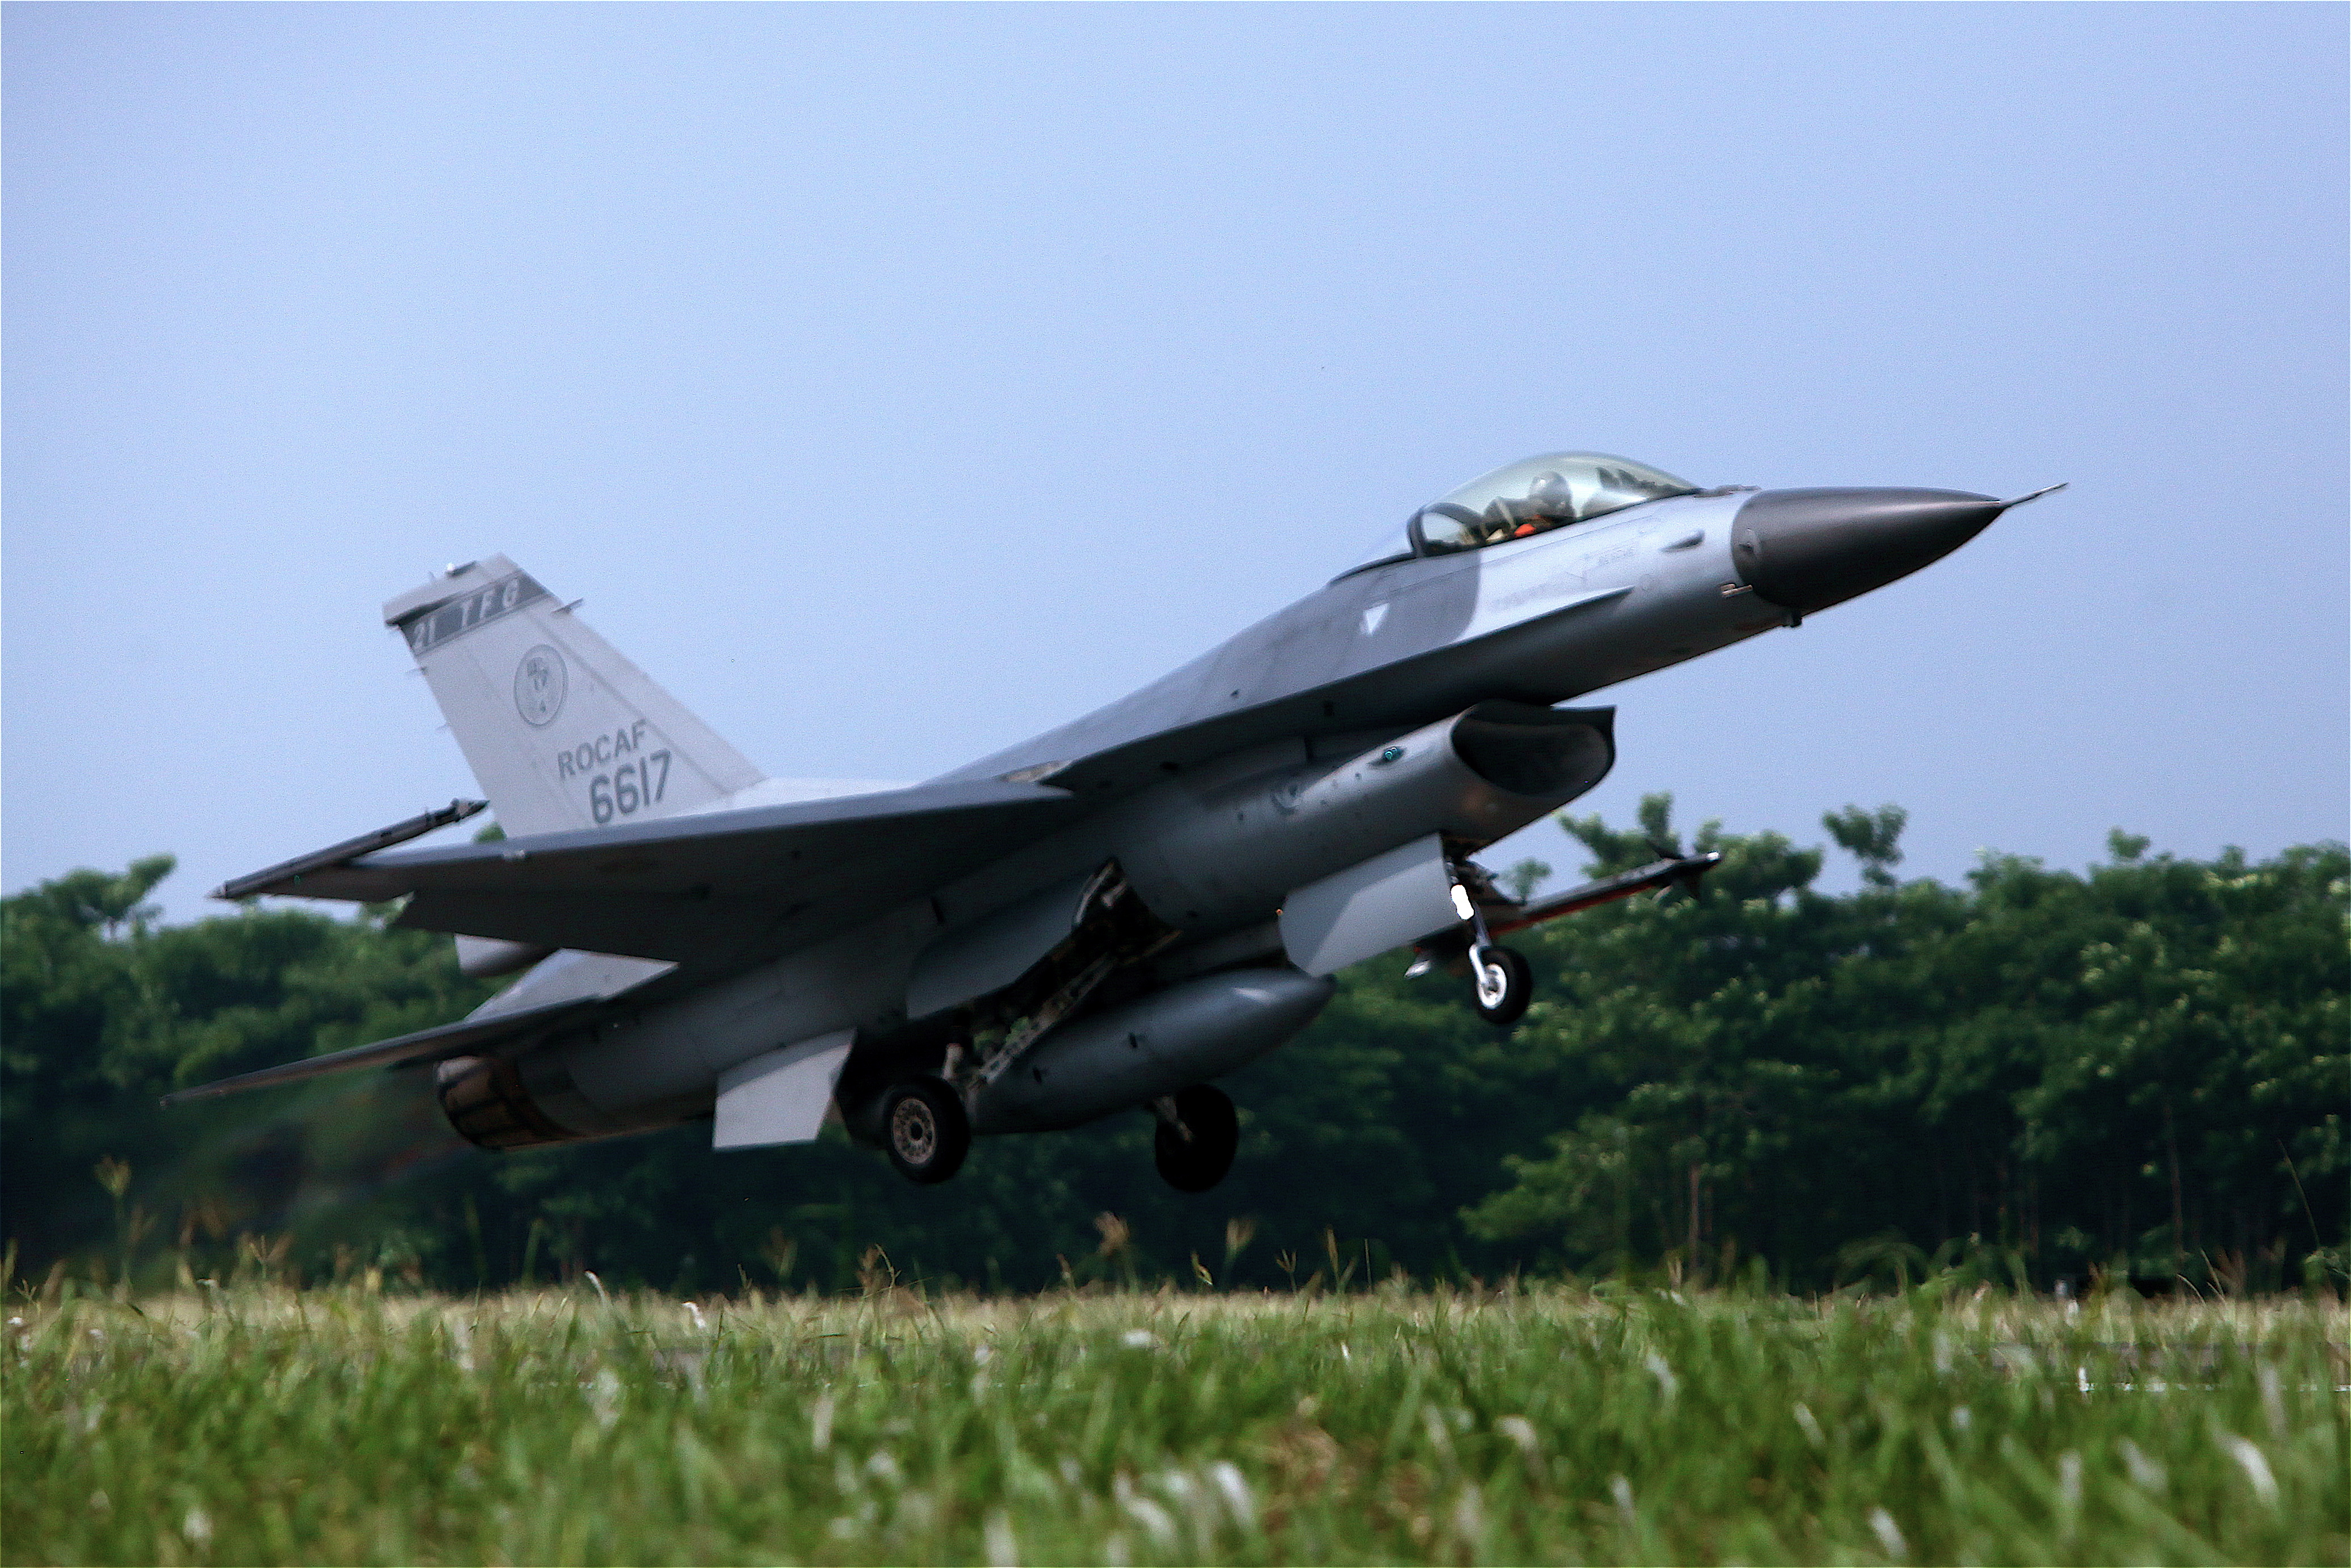 File:Taiwan F-16 Debate - Flickr - Al Jazeera English (3).jpg - Wikimedia  Commons